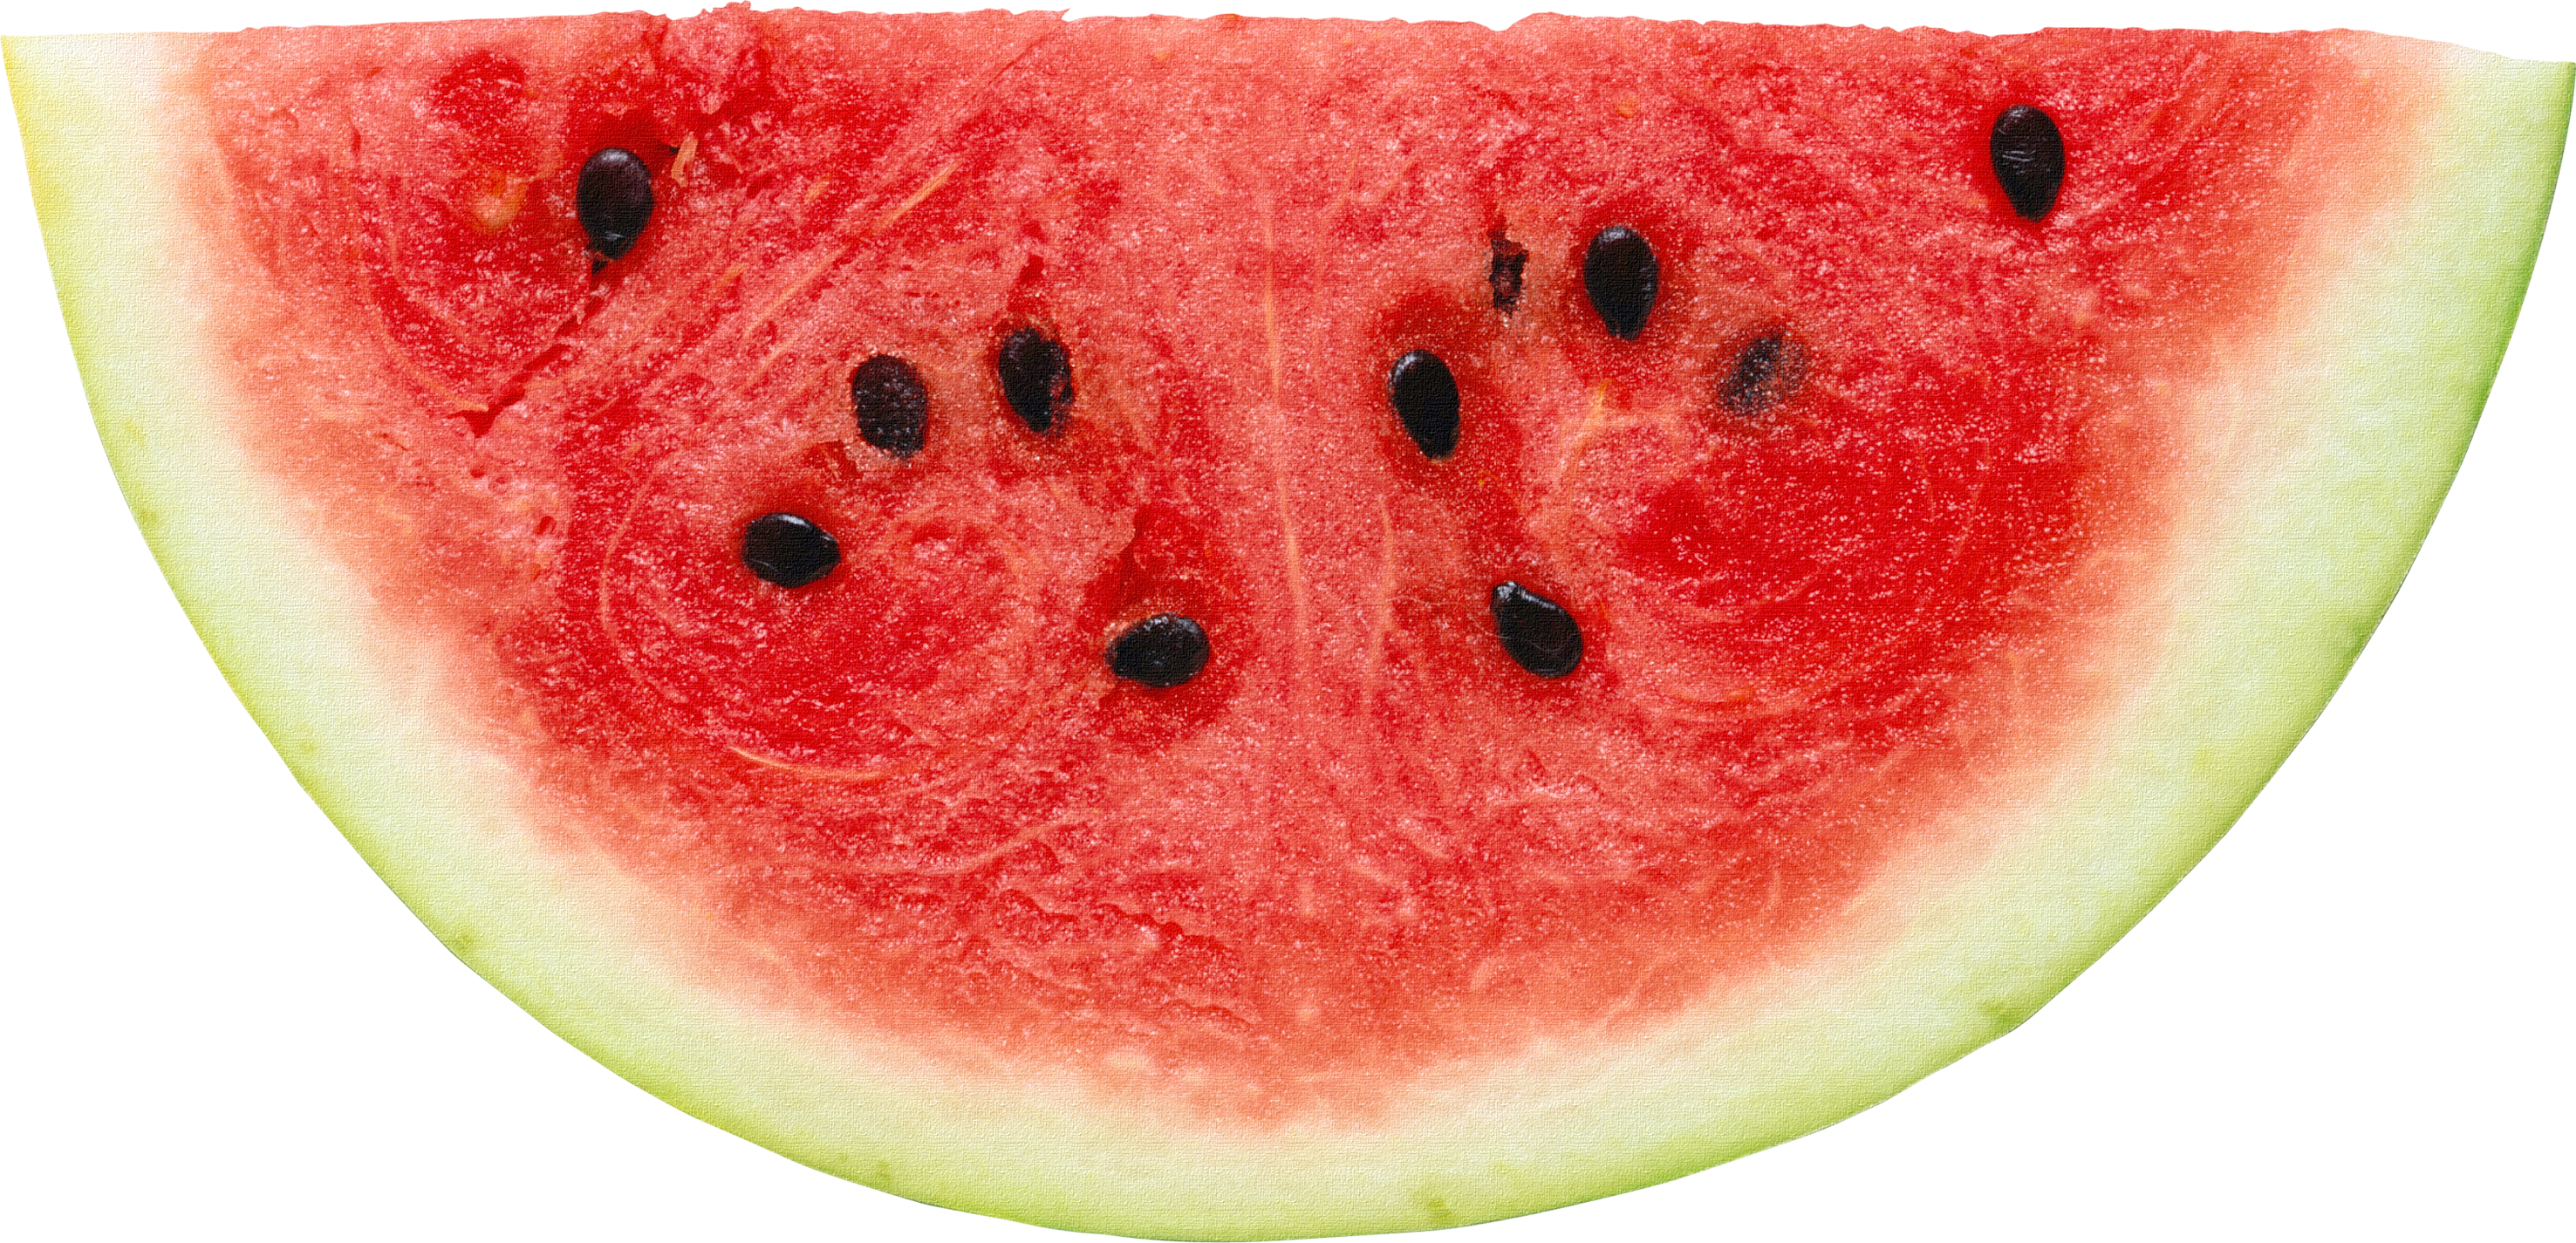 Amazing Watermelon Pictures & Backgrounds